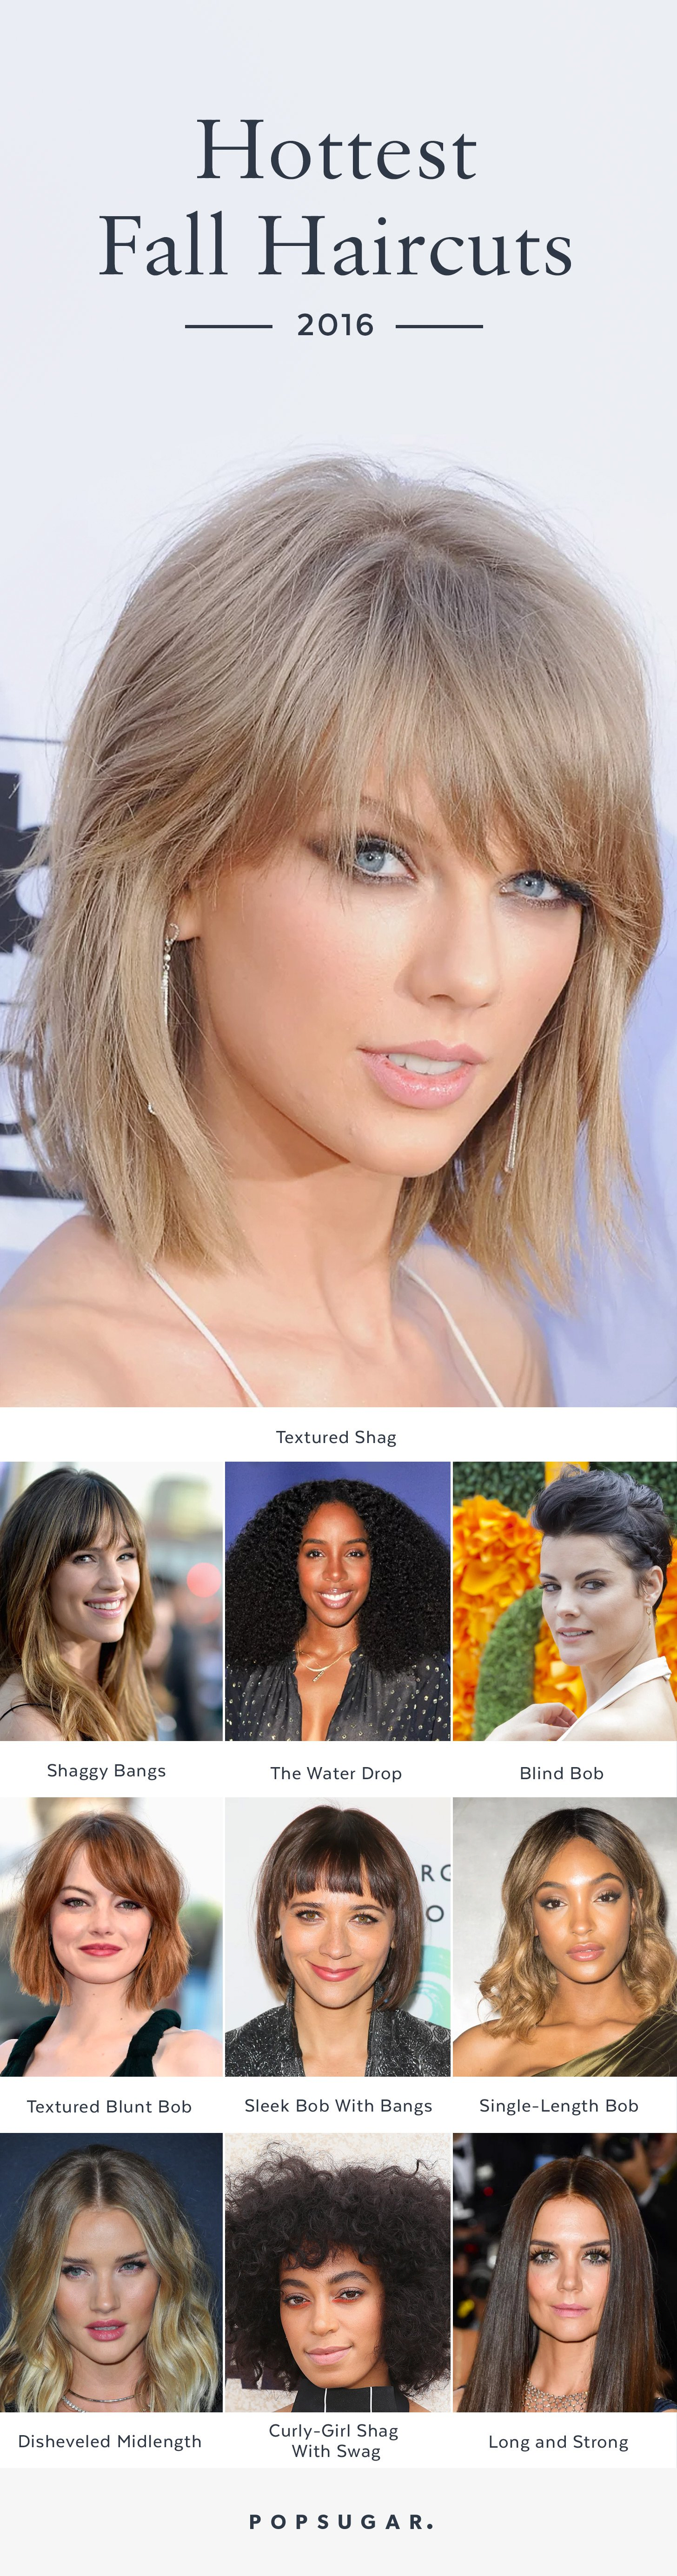 We re Calling It These Are the 10 Hottest Haircuts For Fall 2016